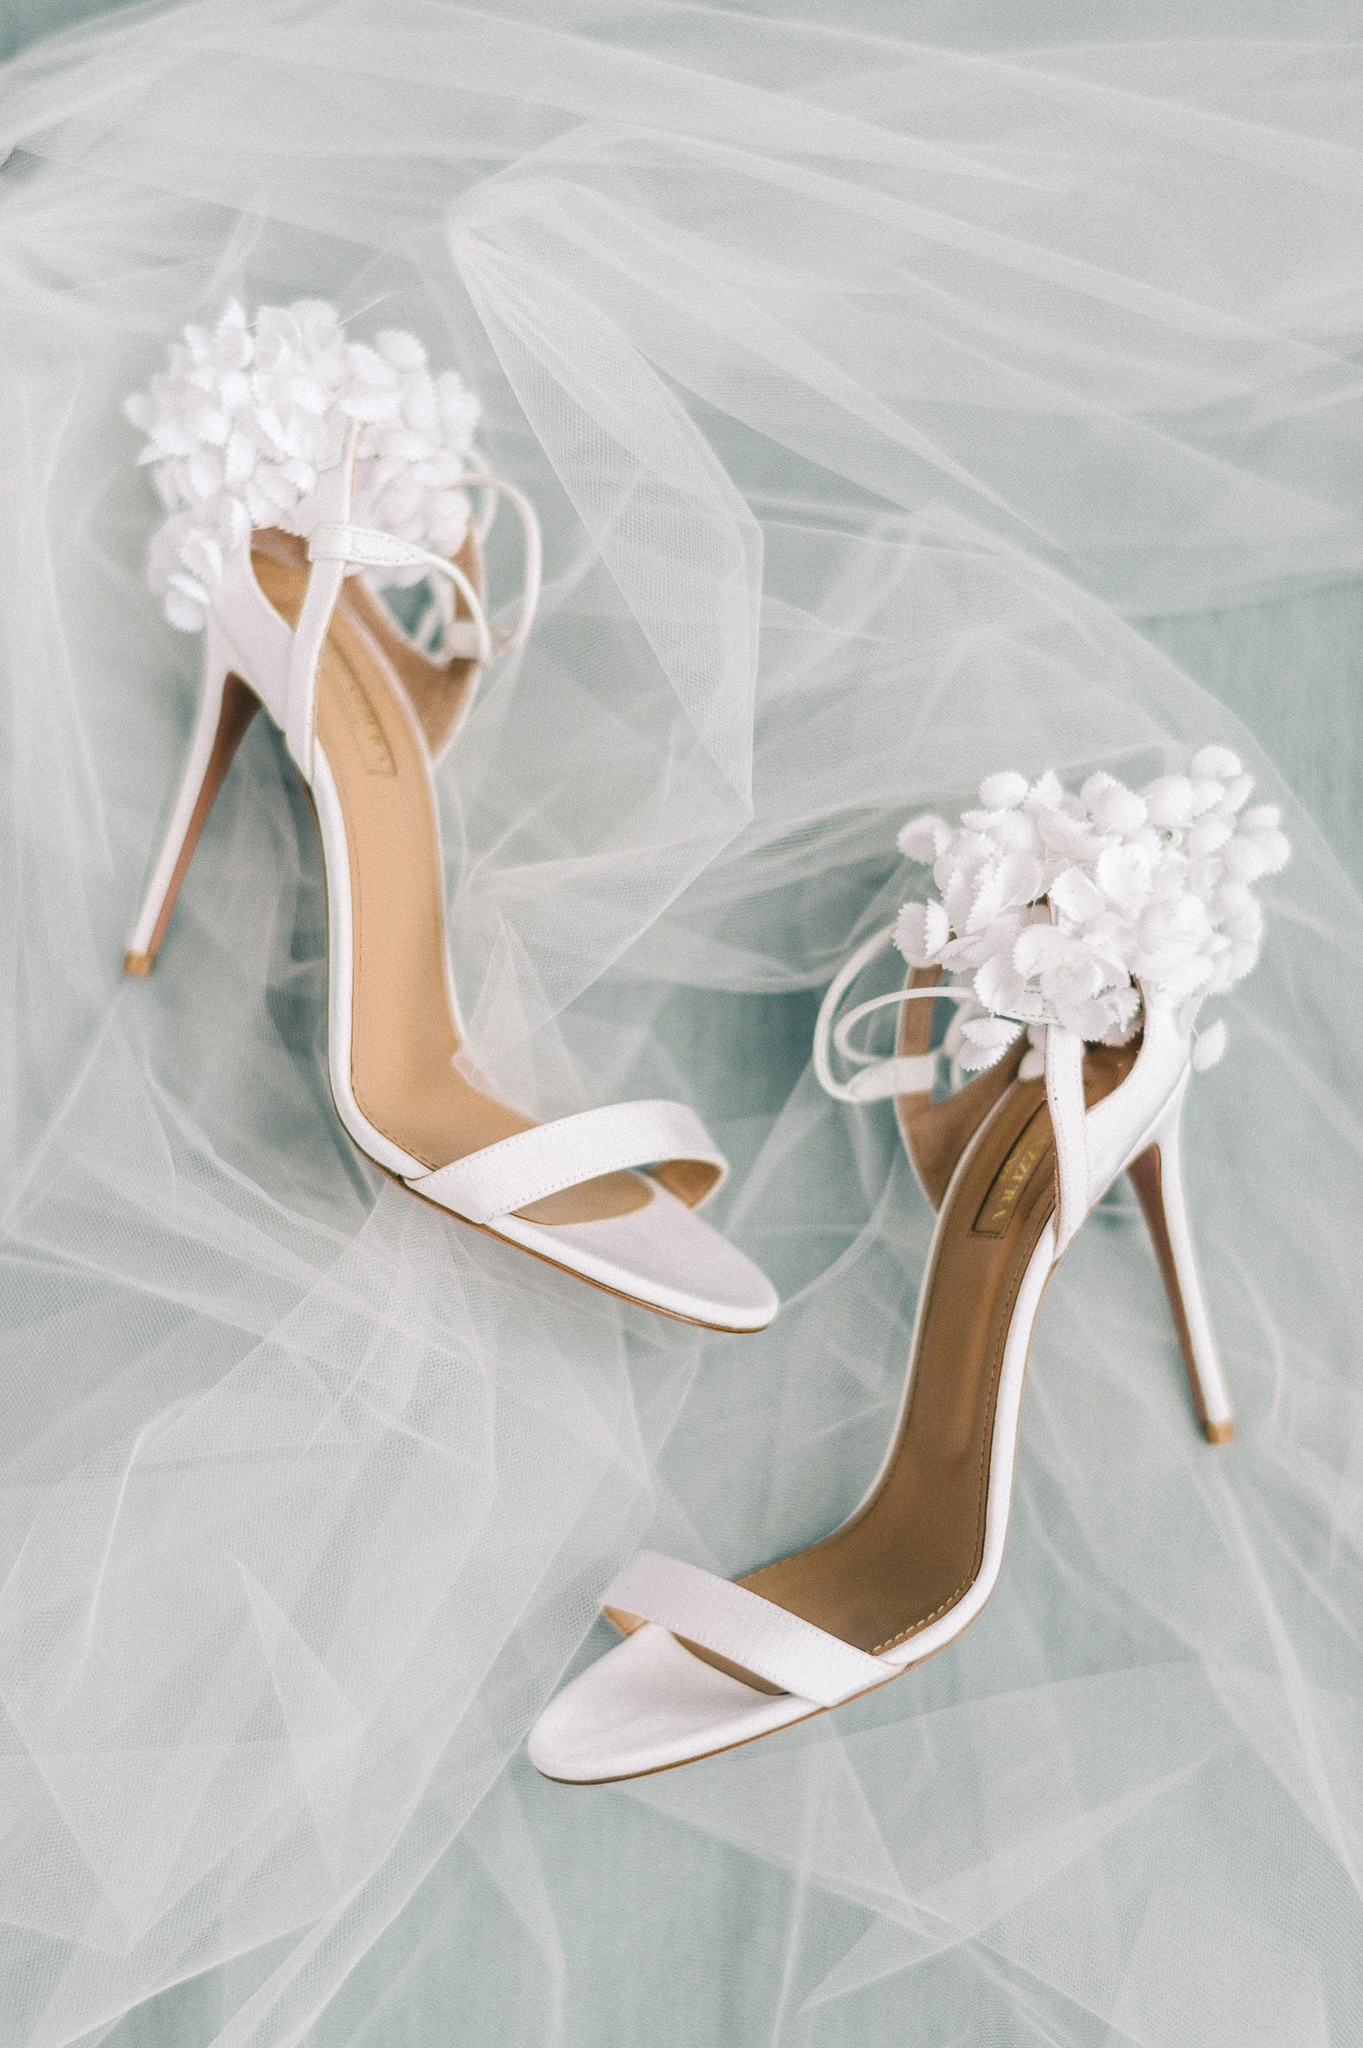 How To Make Sure Your Wedding Dress Won T Drag On The Floor If You